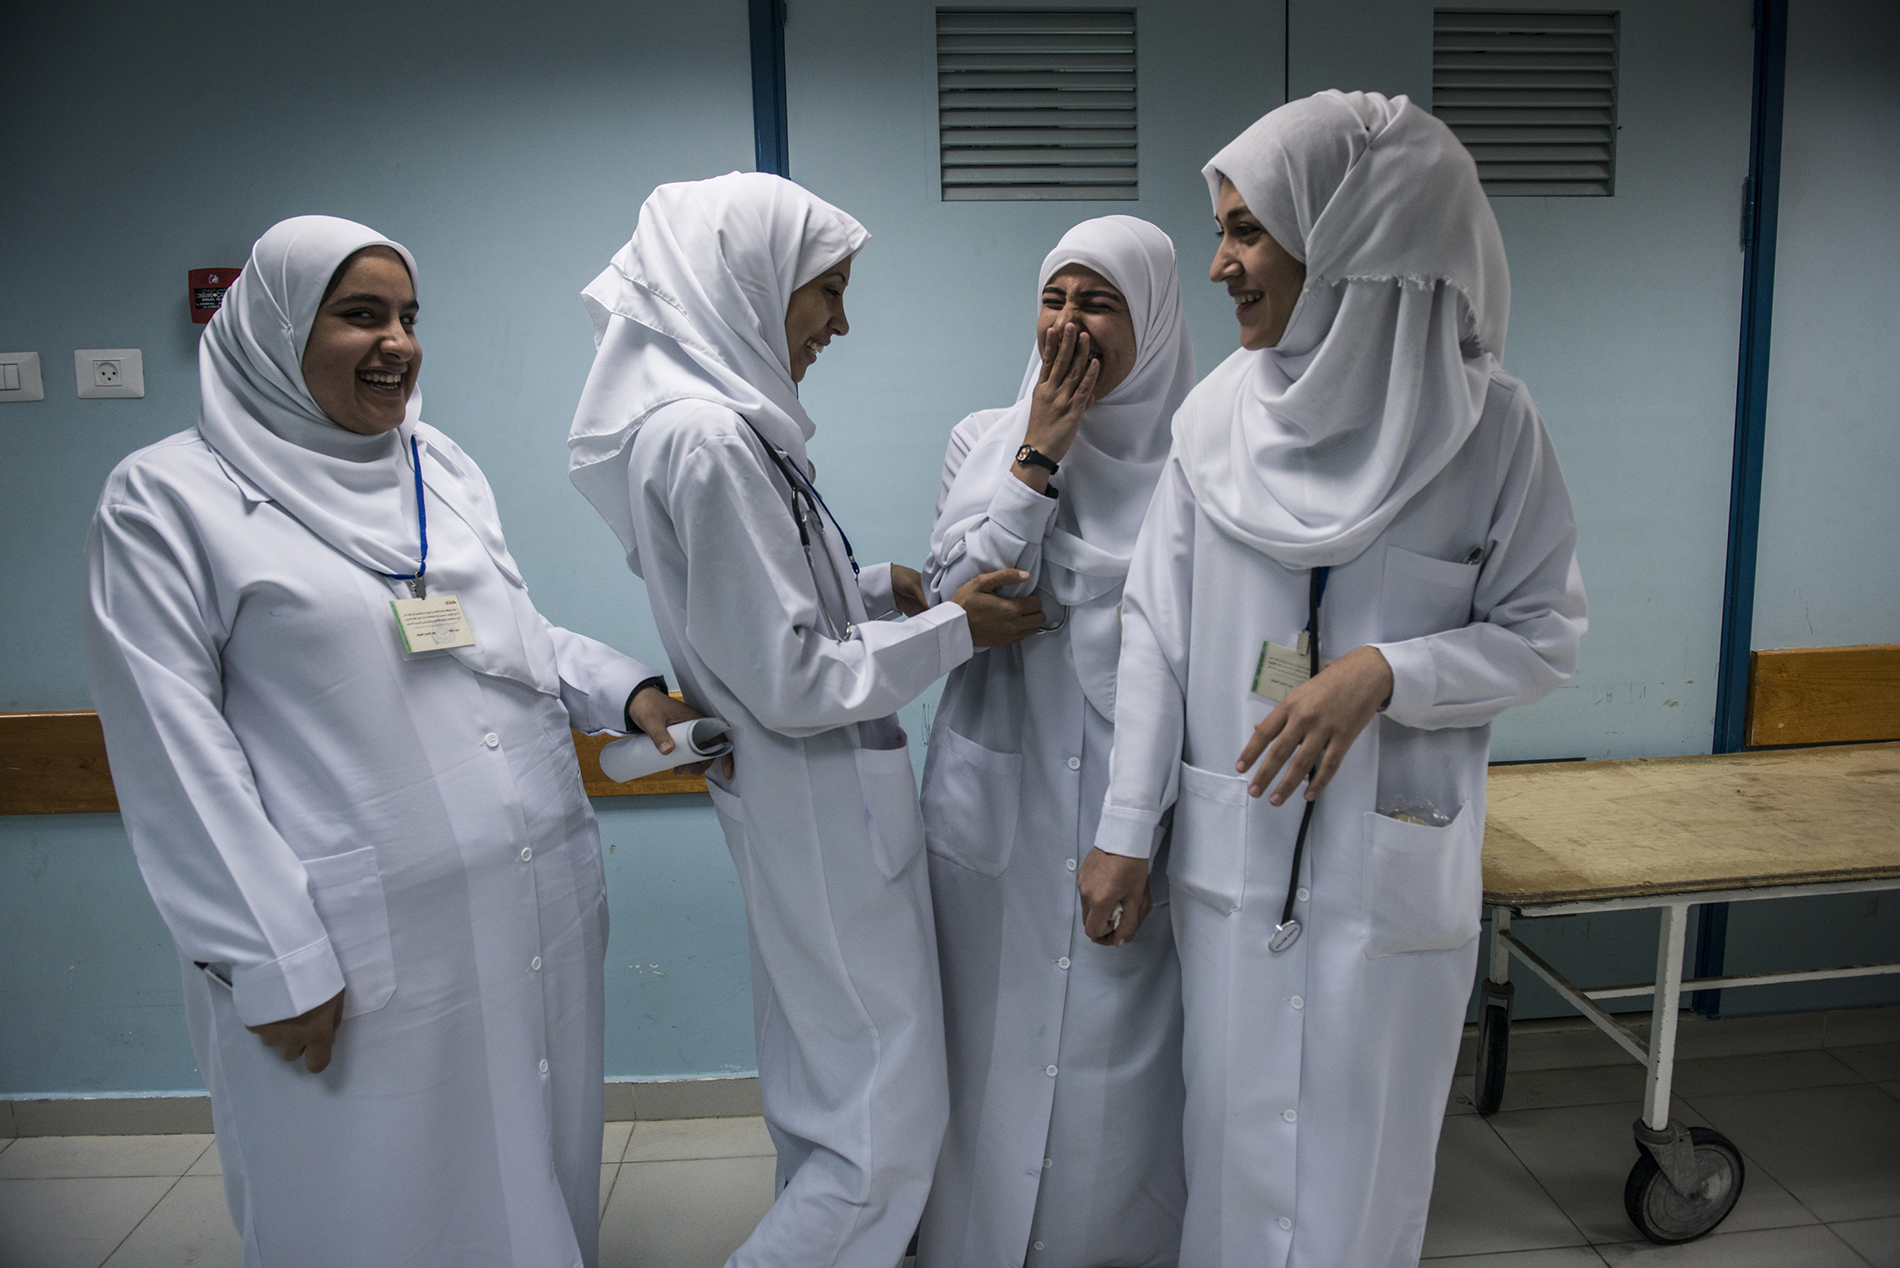 Medical students from Islamic University on break in the Maternity Ward of Al-Shifa Hospital in Gaza.  - Gaza Girls: Growing Up in the Gaza Strip © Monique Jaques